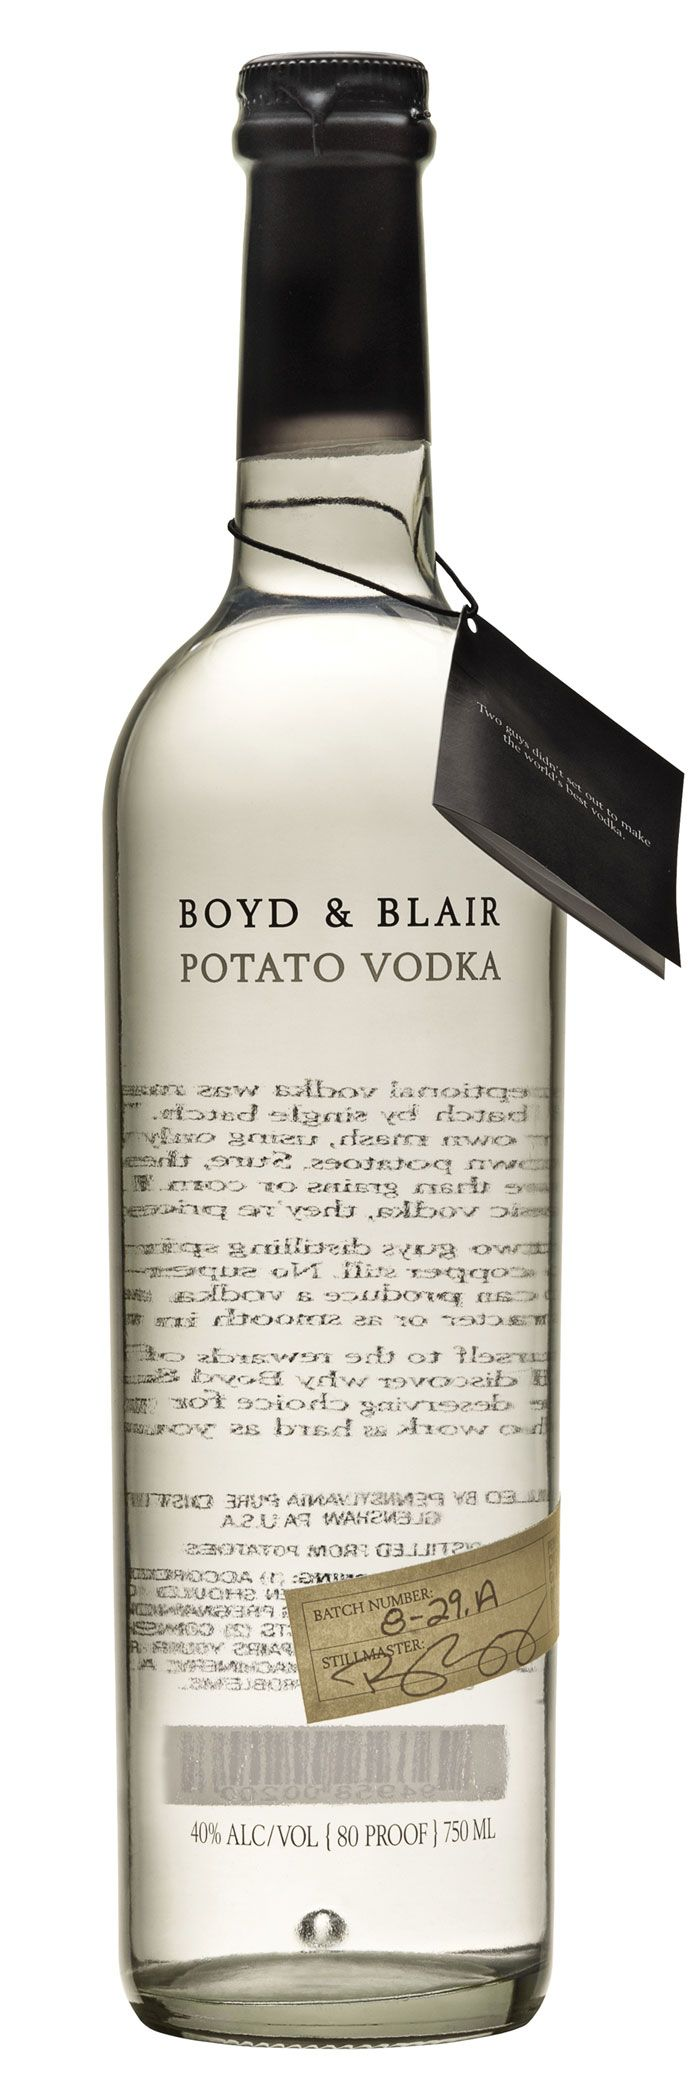 Chemistry Inc, Boyd & Blair Potato Vodka. Beautiful typography on this simple bottle. The type showing through from the back creates a unique effect, and the hand-written sticker makes the drink seem personalized and even more exclusive. The color of the type blends perfectly with the color of the vodka.